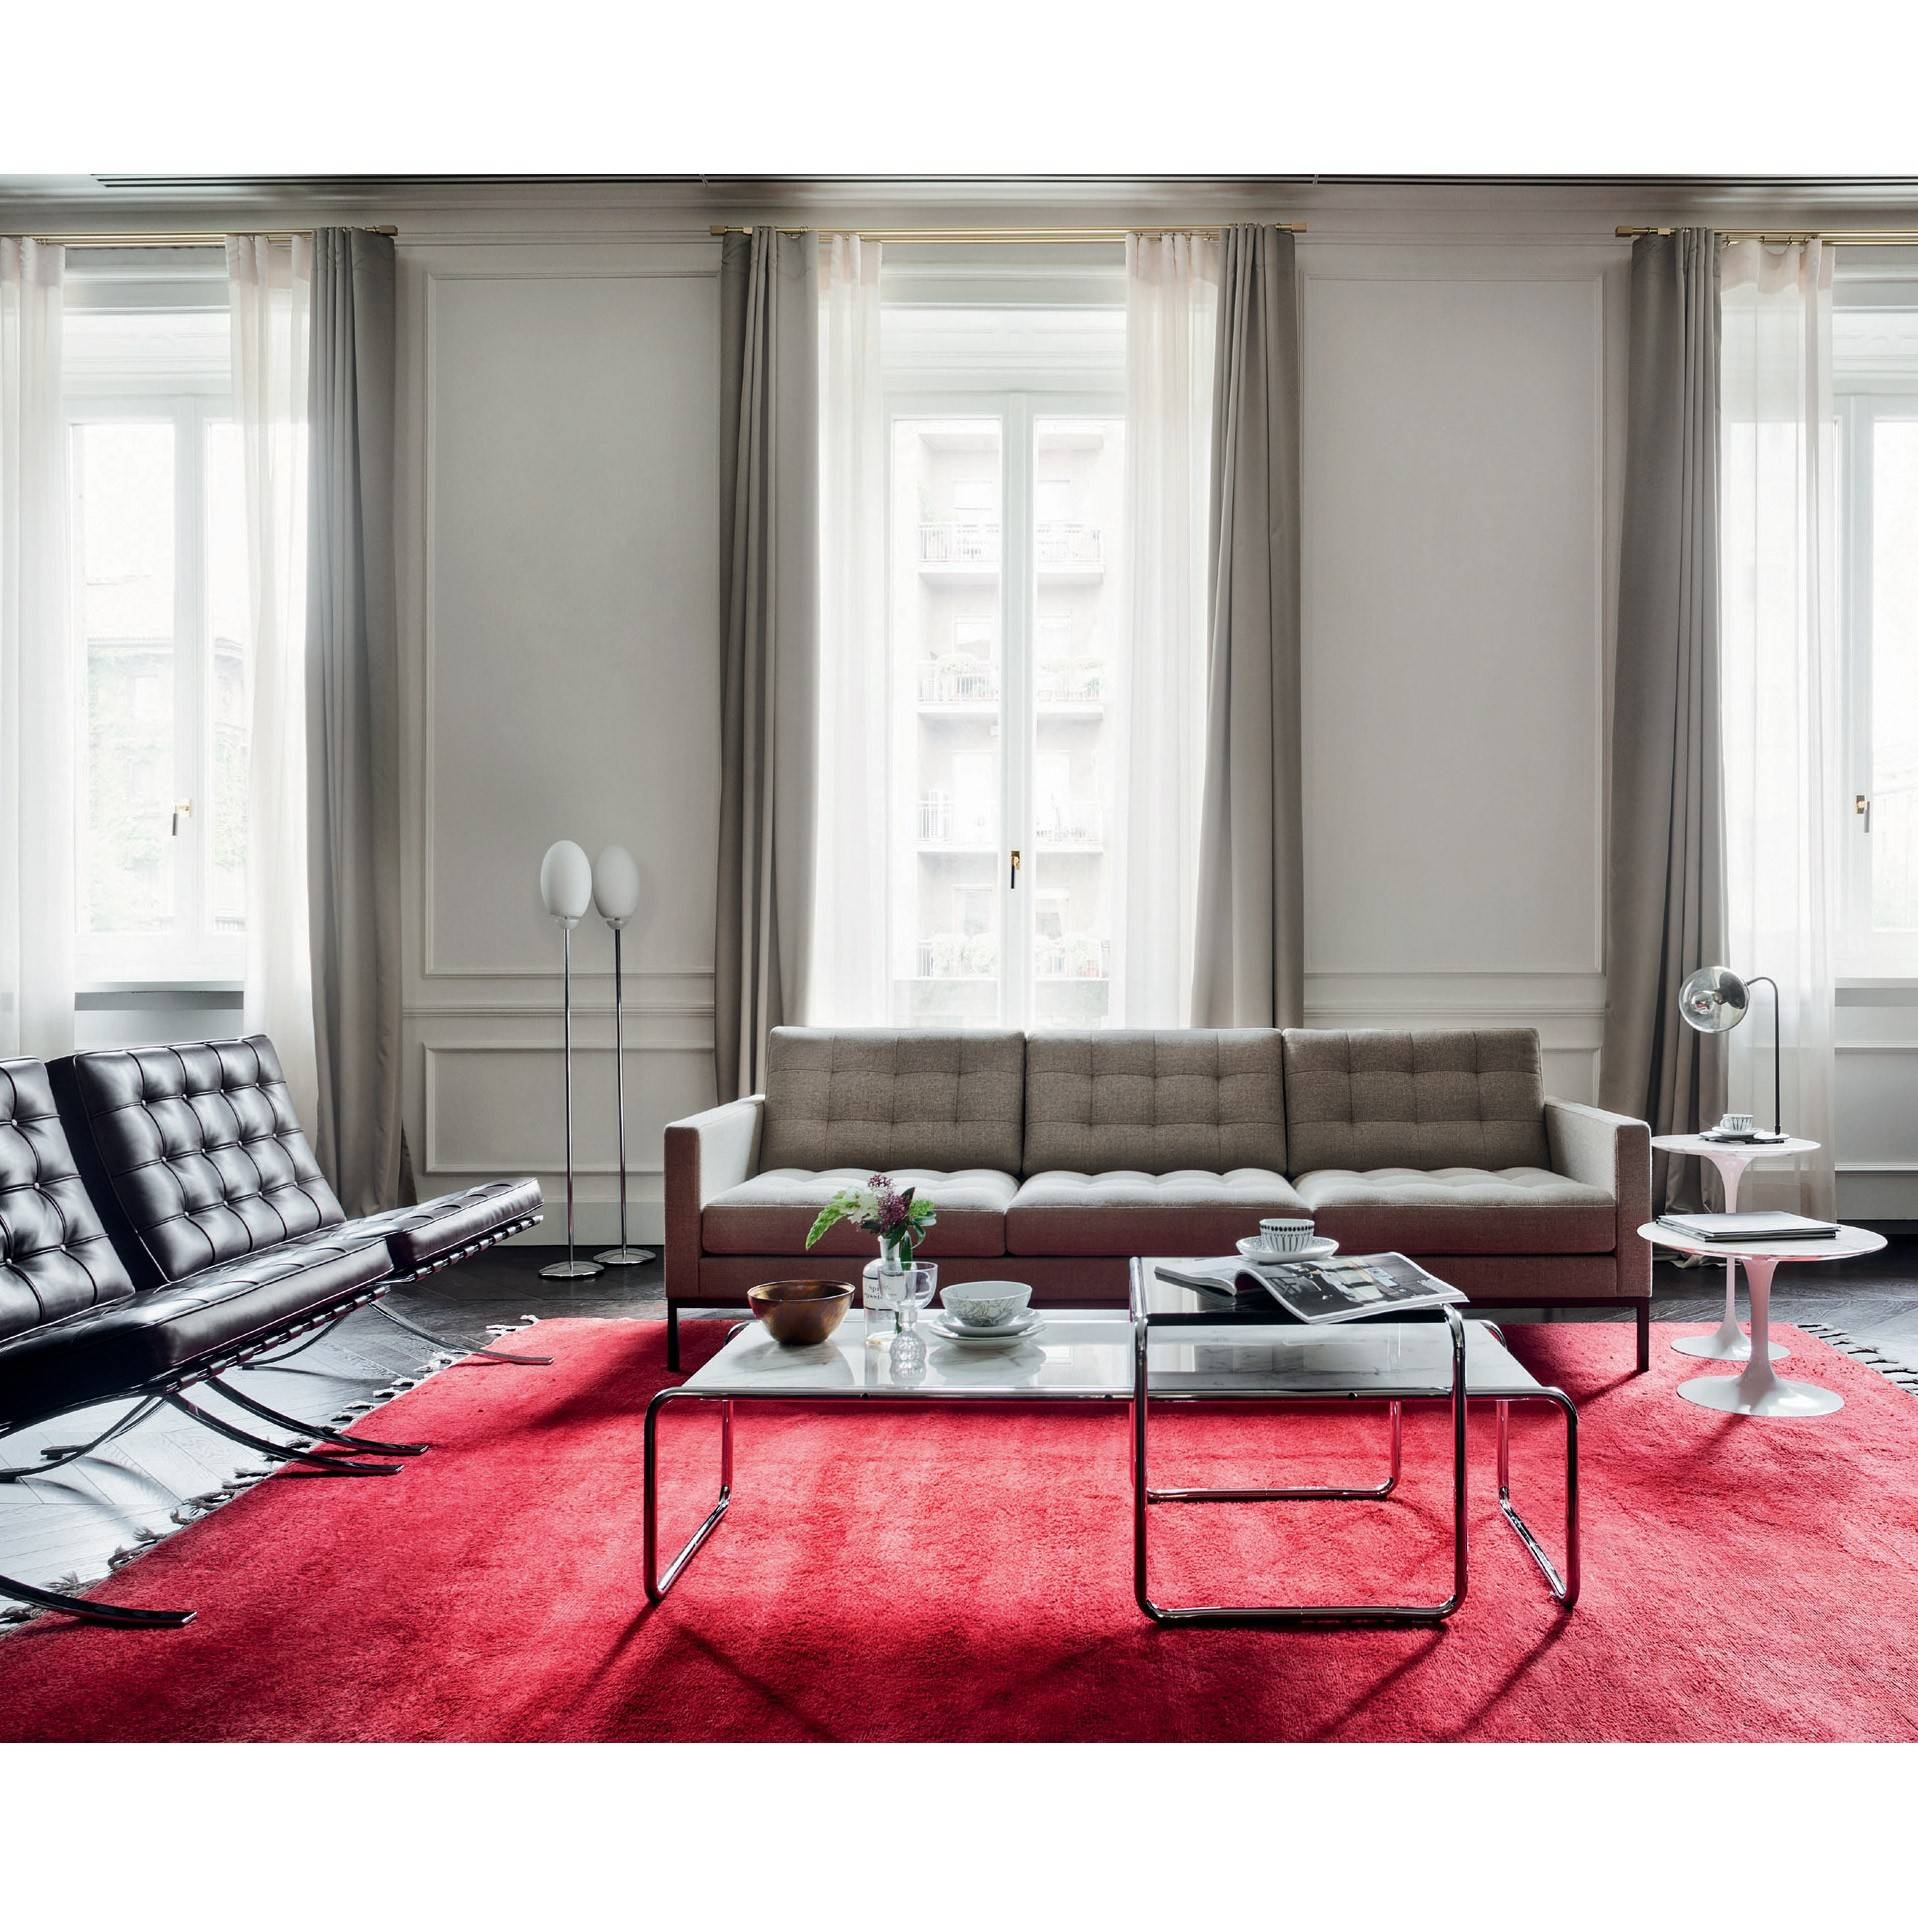 Florence Knoll 'relax' Sofa   Skandium for Florence Knoll Fabric Sofas (Image 7 of 25)